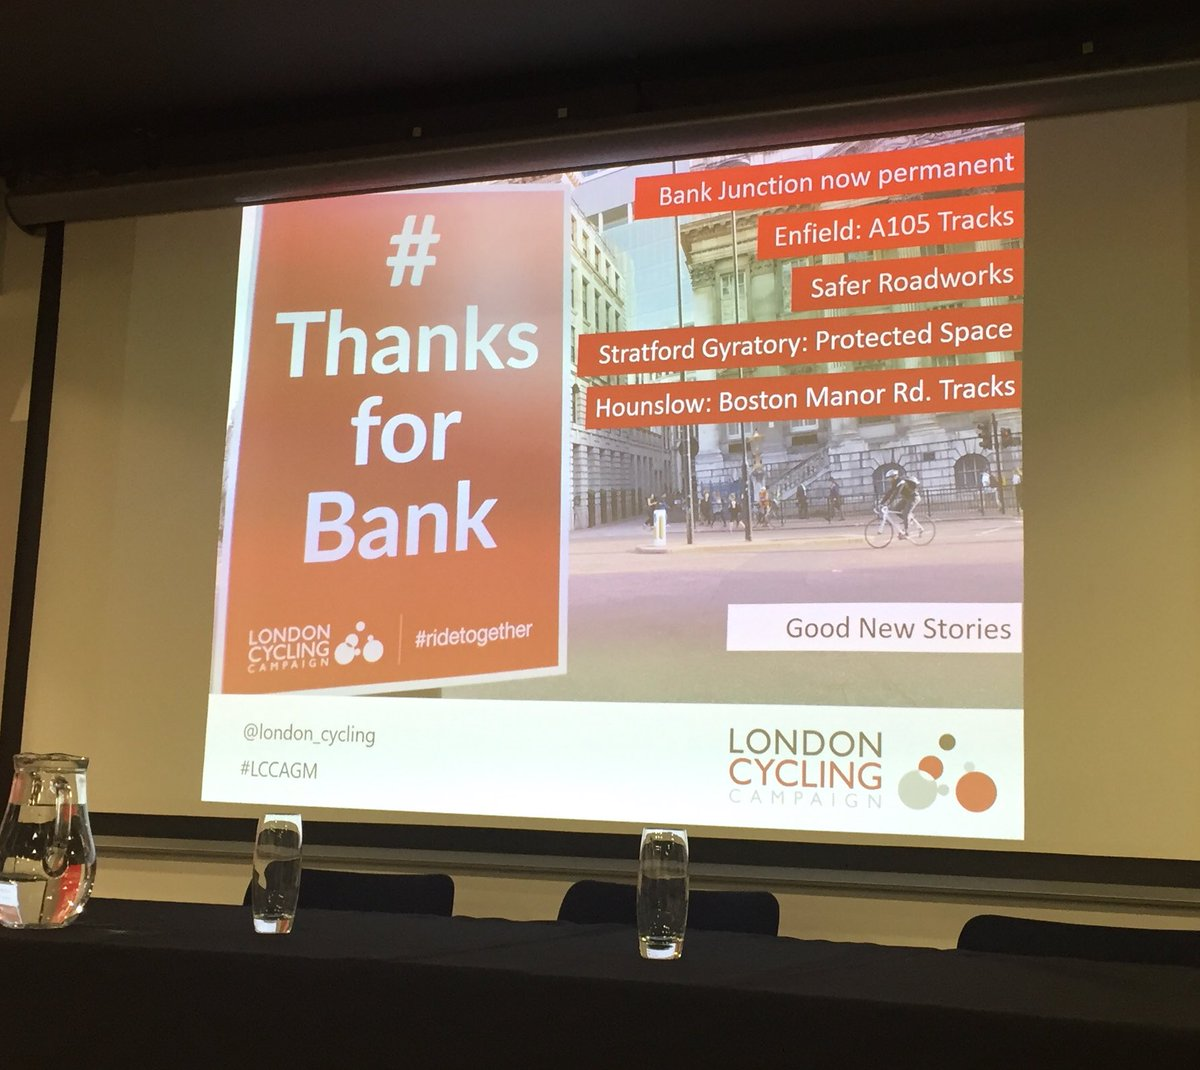 test Twitter Media - Note the shout out for #Enfield in @londoncycling CEO Ashok's speech 😊 @CycleEnfield @EnfieldCouncil #LCCAGM https://t.co/lhvnz00yHV